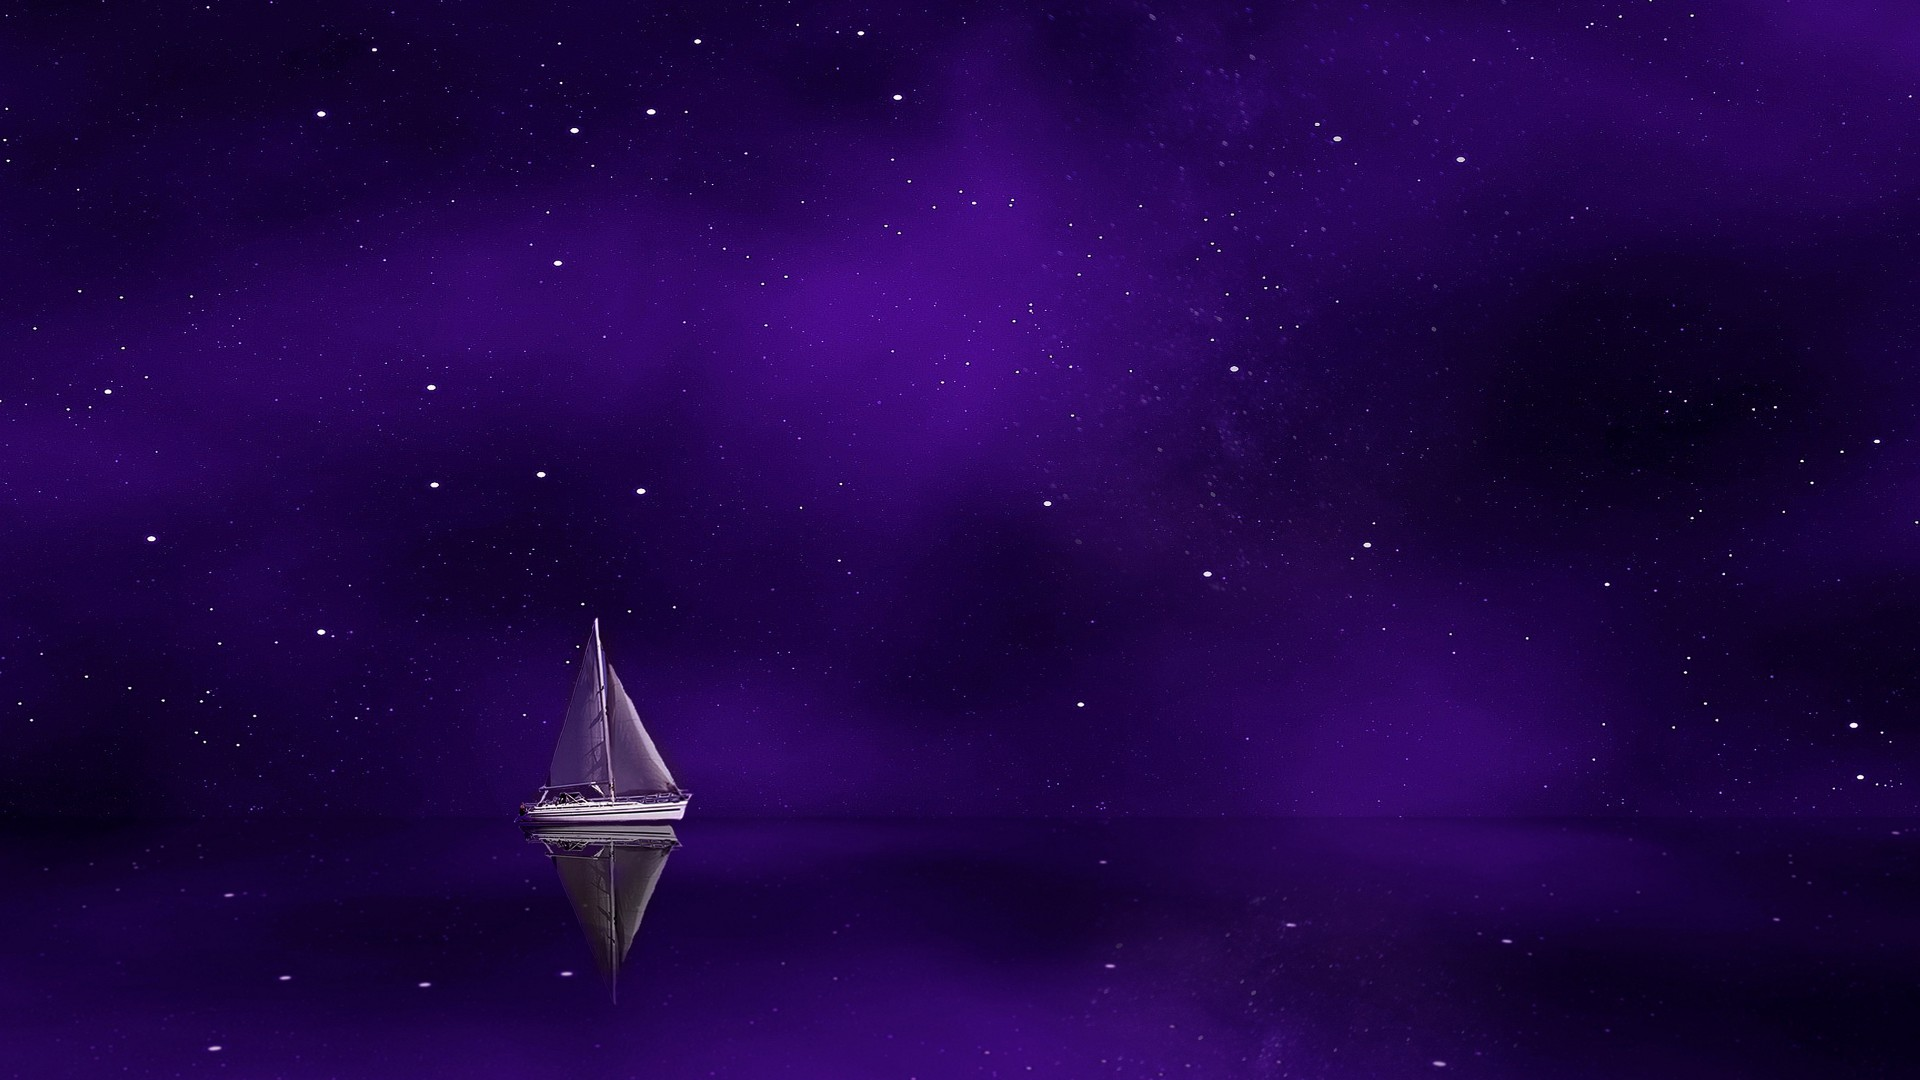 Fall Flowers Wallpaper Iphone Sailing Boat Purple Sky 4k Wallpapers Hd Wallpapers Id